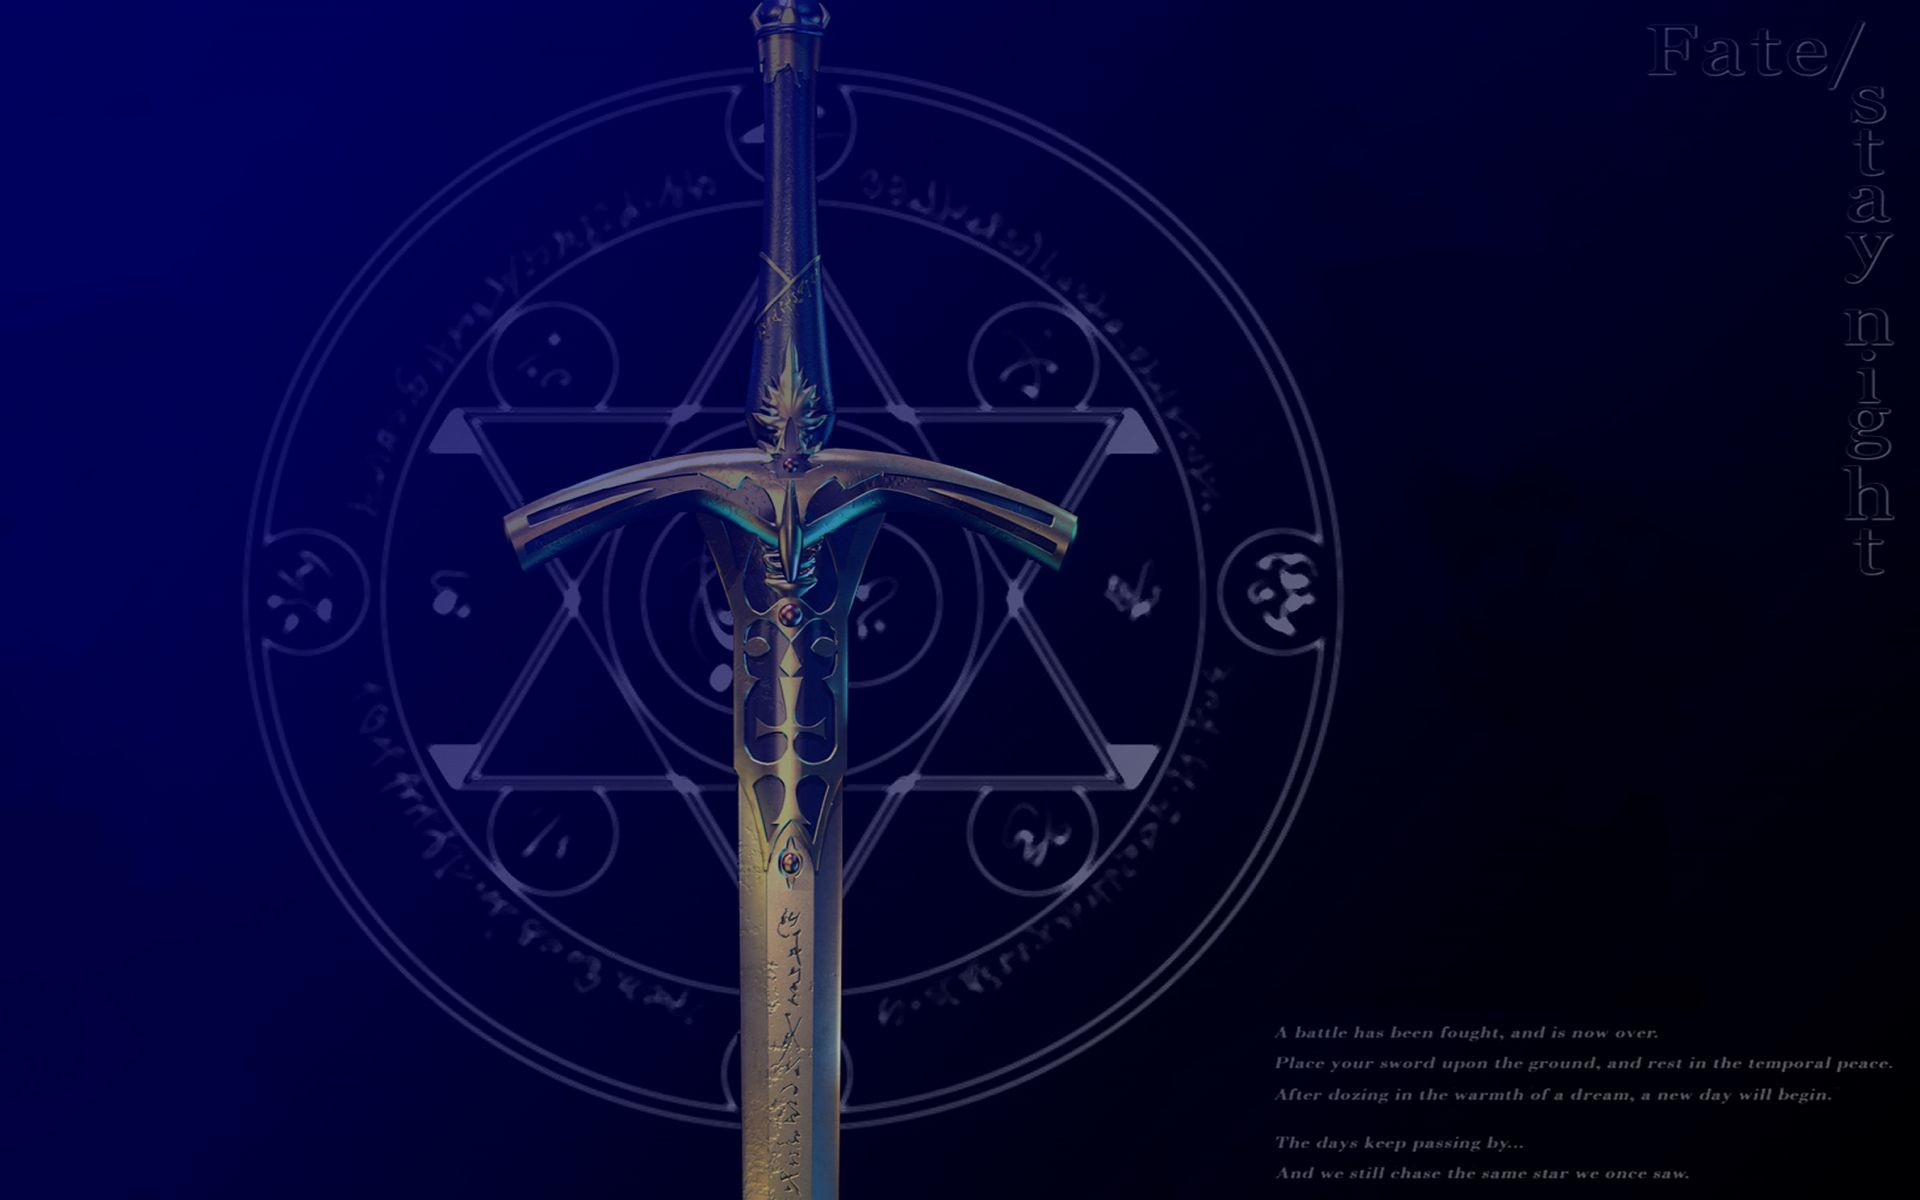 1920x1200 Fatestay night excalibur swords fate series wallpaper |  | 19310 |  WallpaperUP